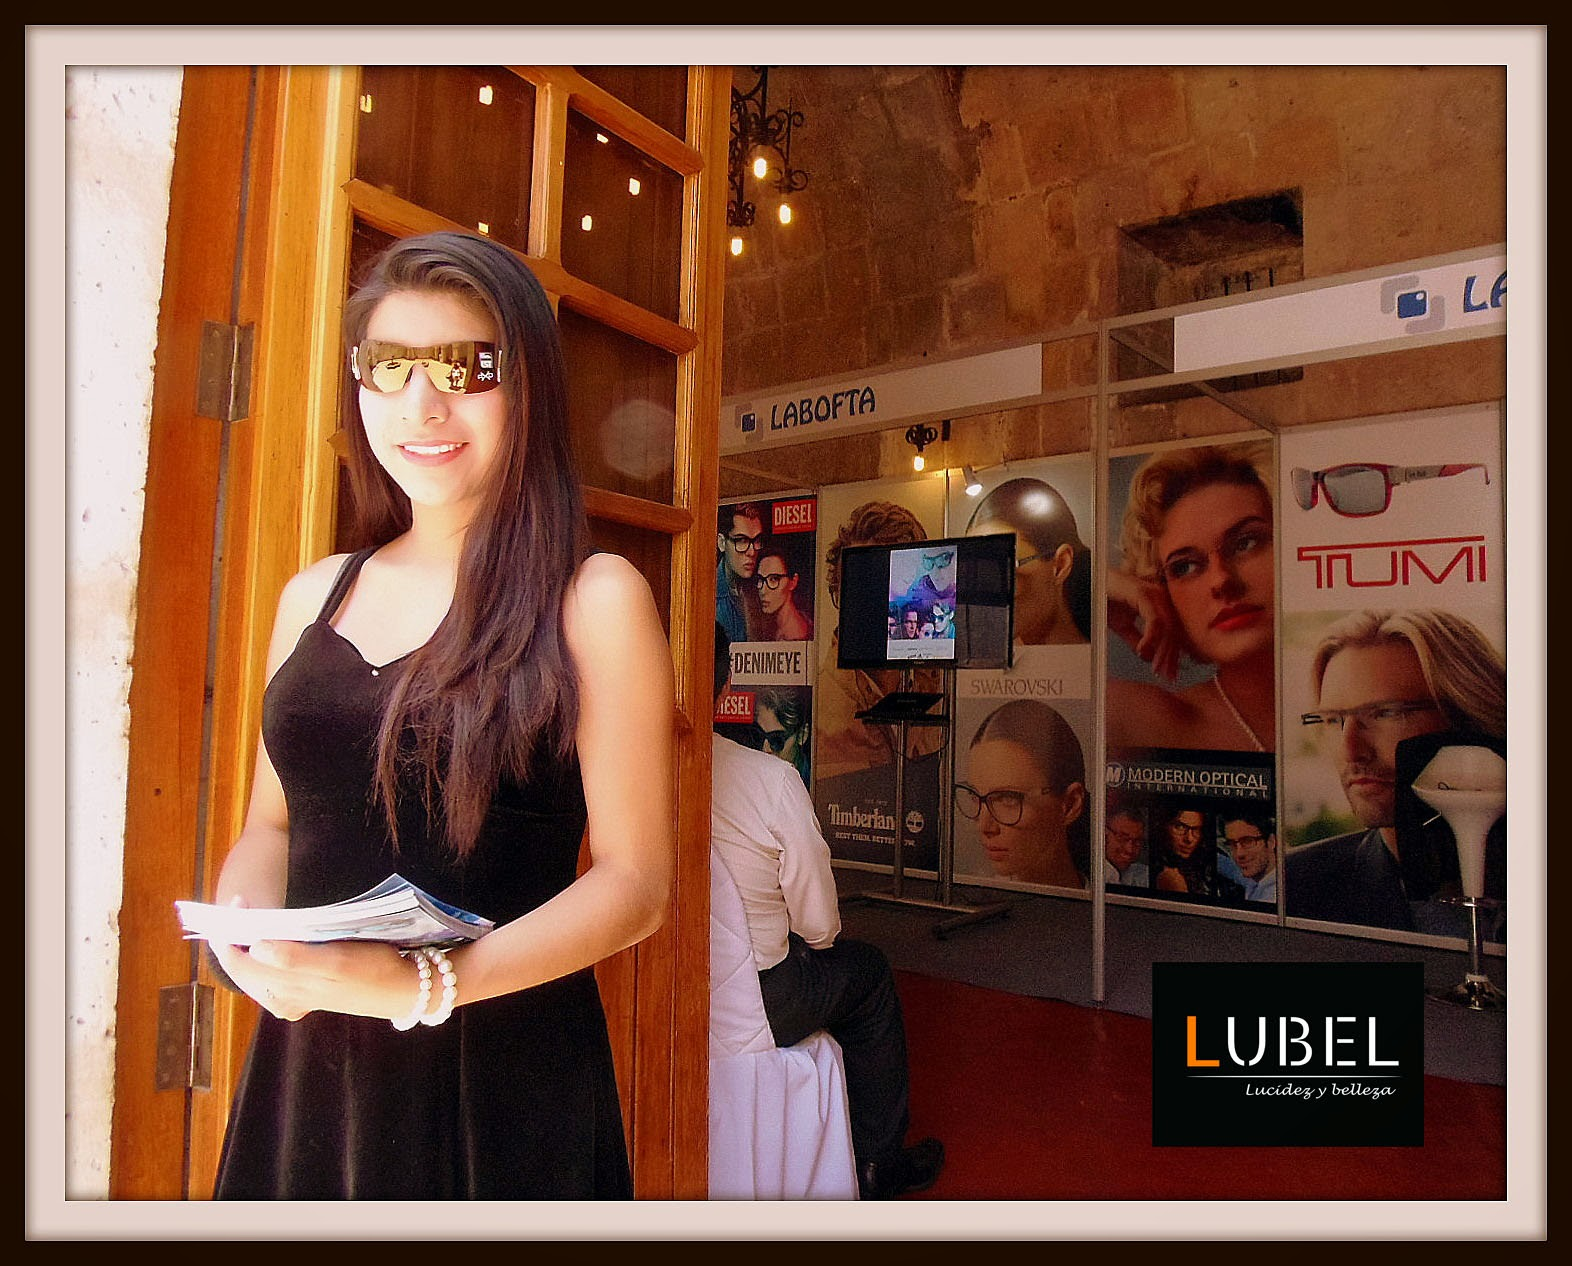 Anfitriona lubel labofta